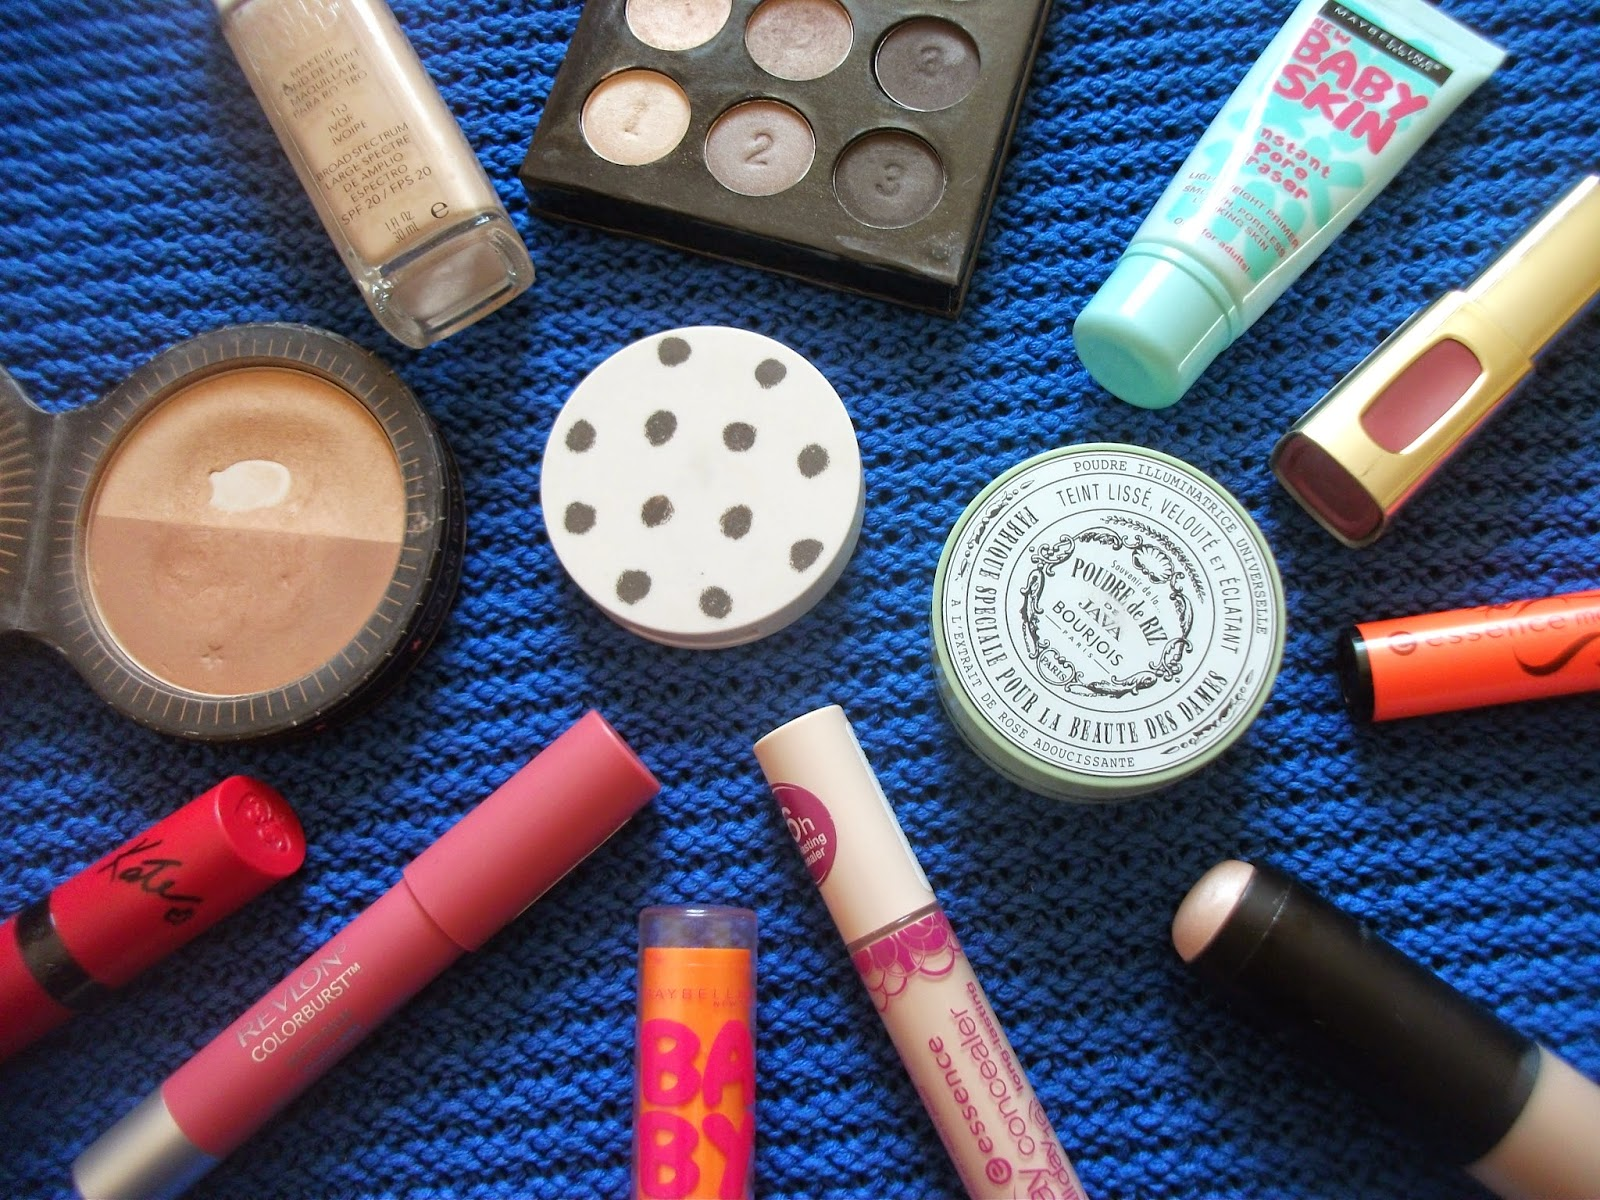 UK DRUGSTORE MAKE UP